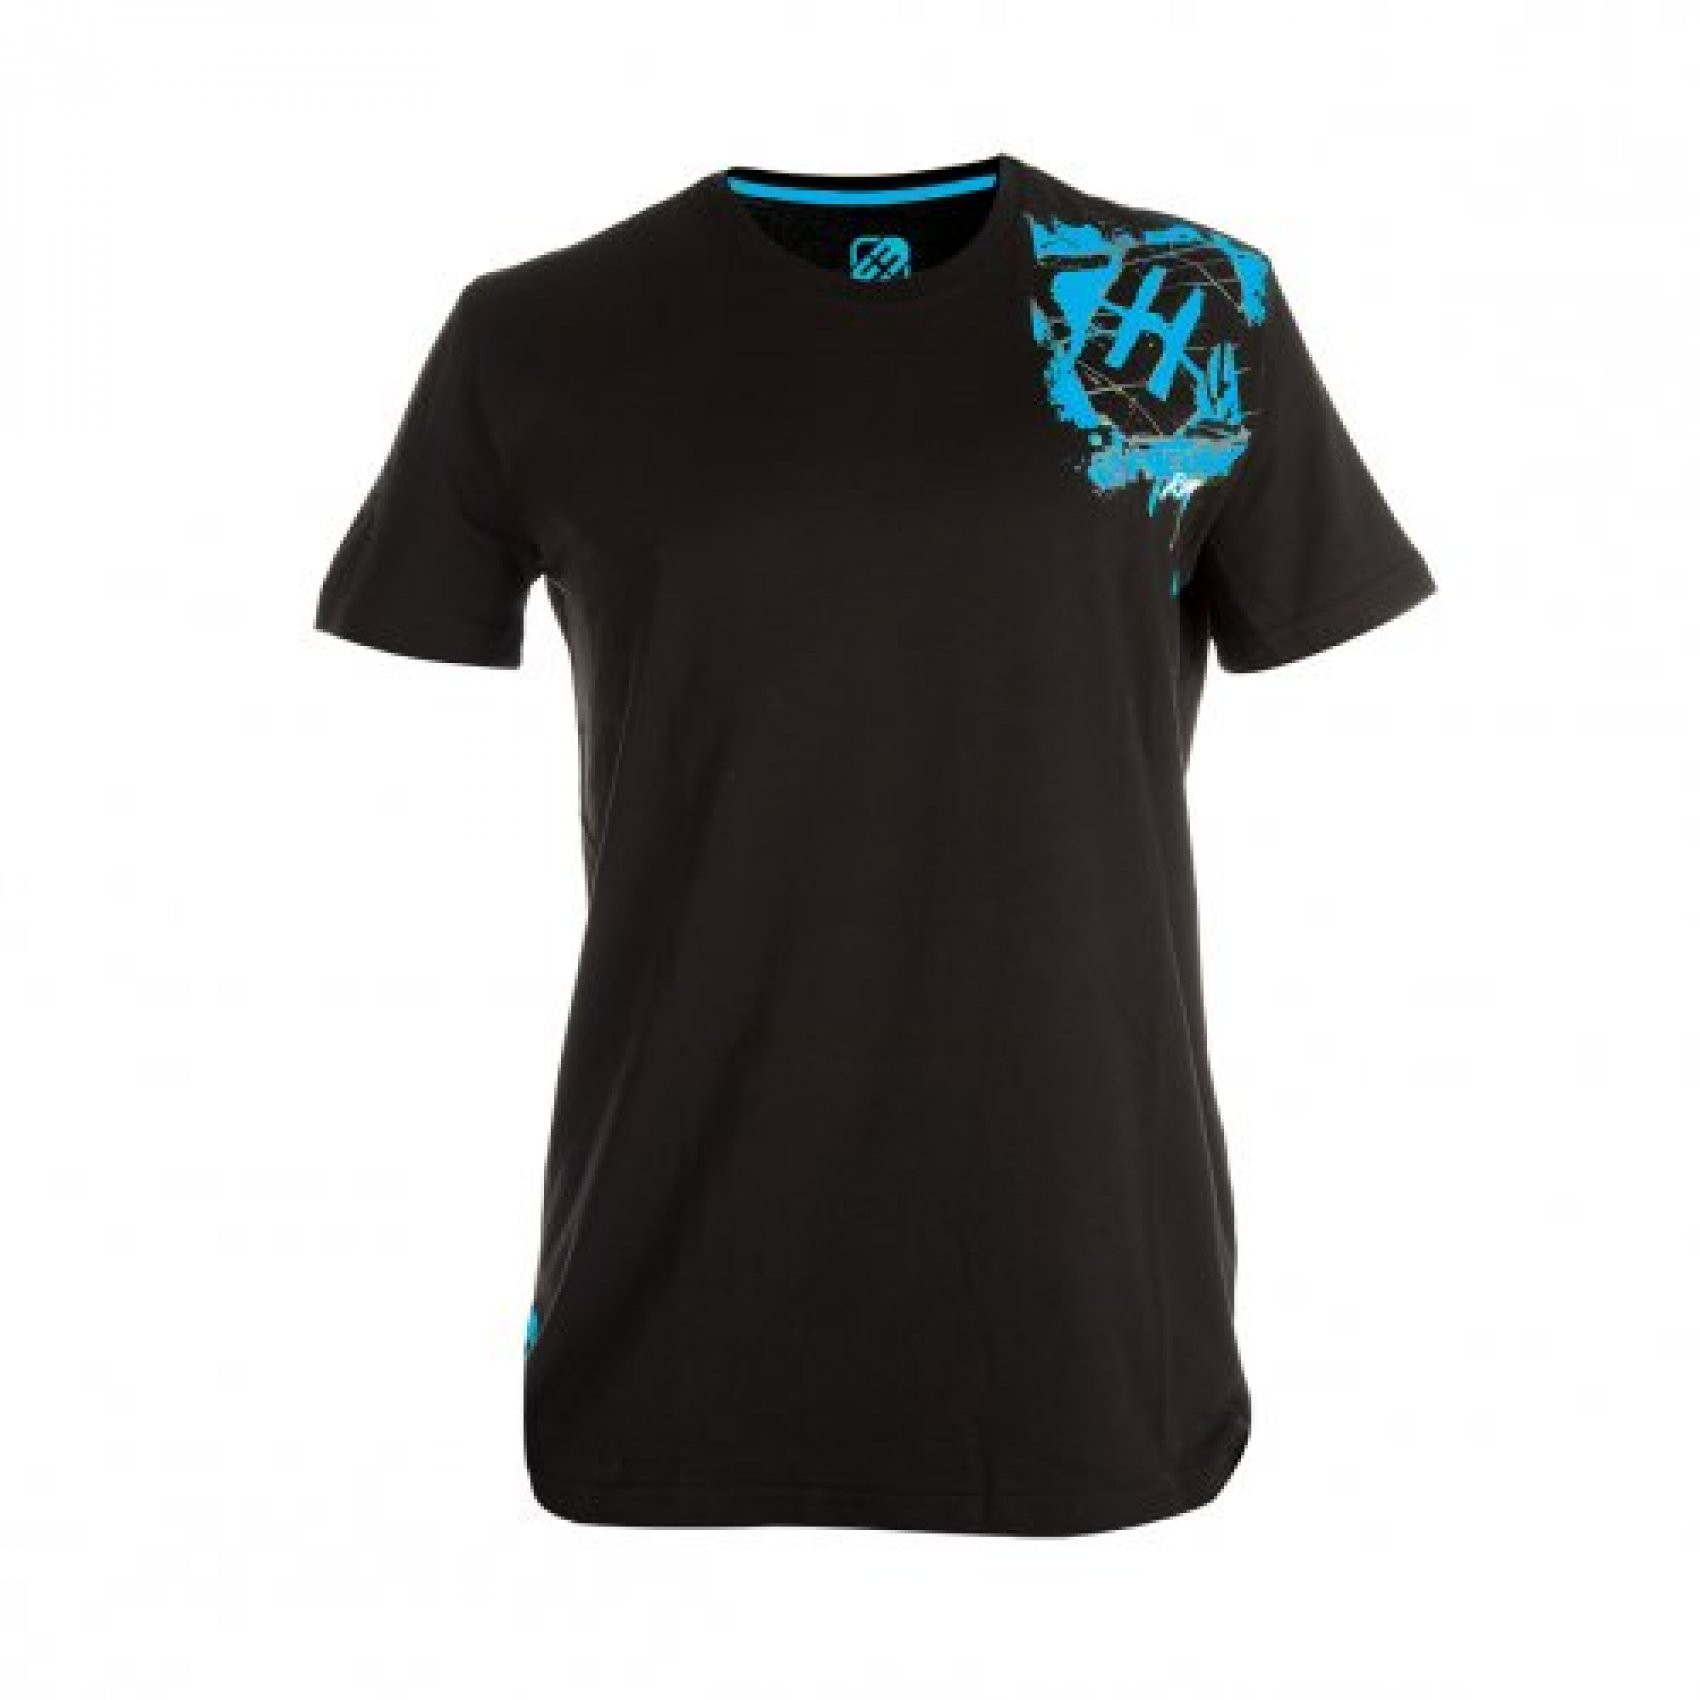 T-shirt garçon babyz racing bleu (photo)